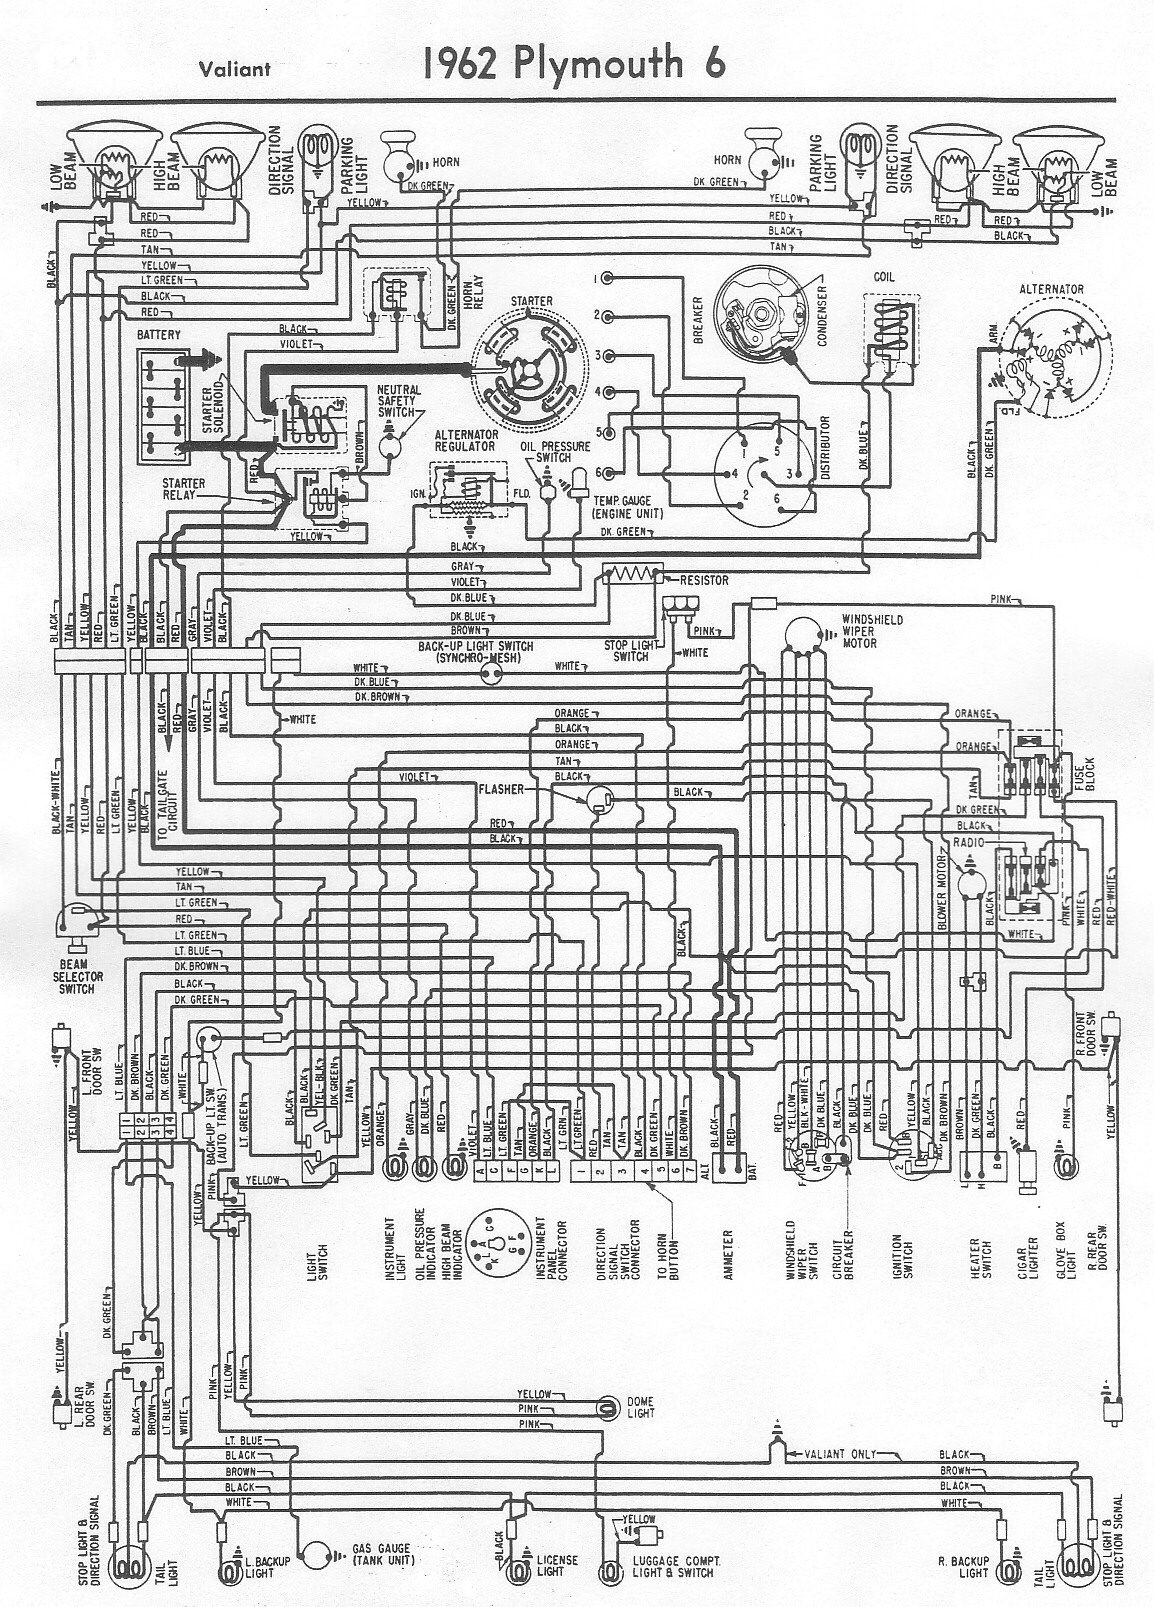 62Valiant wiring diagrams 64 valiant wiring diagram at readyjetset.co